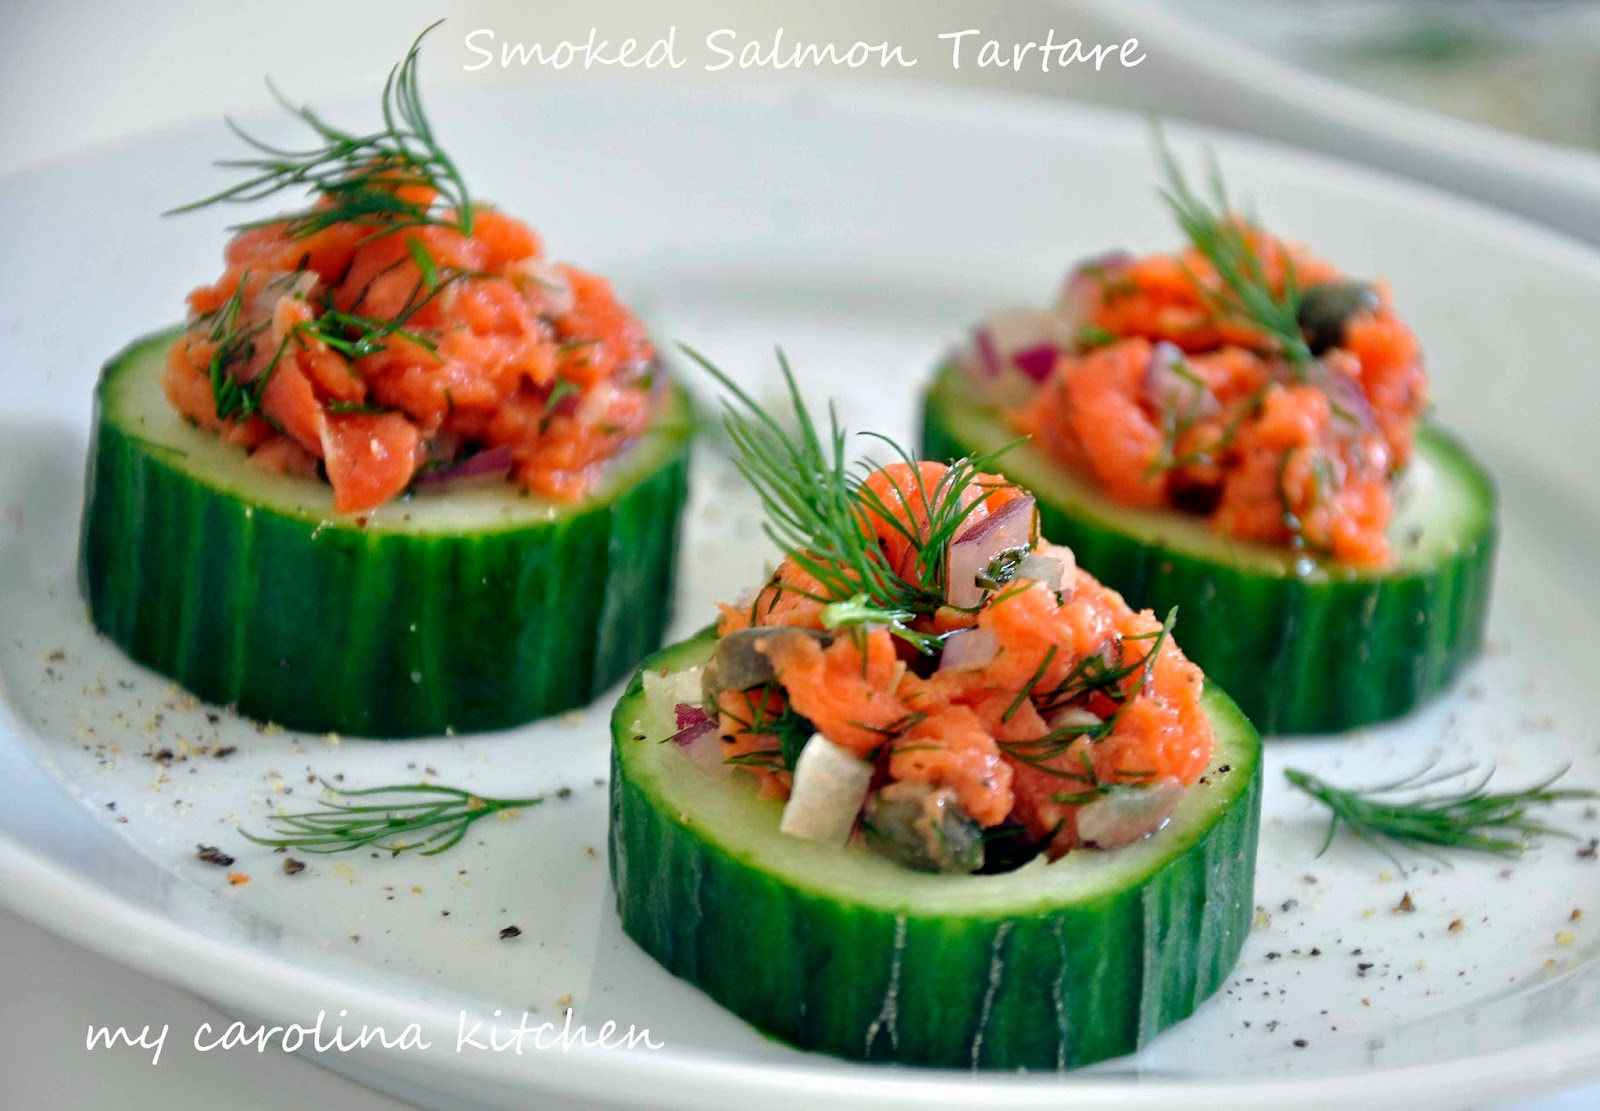 Delightful Entree Ideas For Dinner Party Part - 10: Smoked Salmon Tartare On Cucumber Rounds Featured On IVillageu0027s 10 Easy U0026  Elegant Dinner-Party Recipes For Non-Cooks